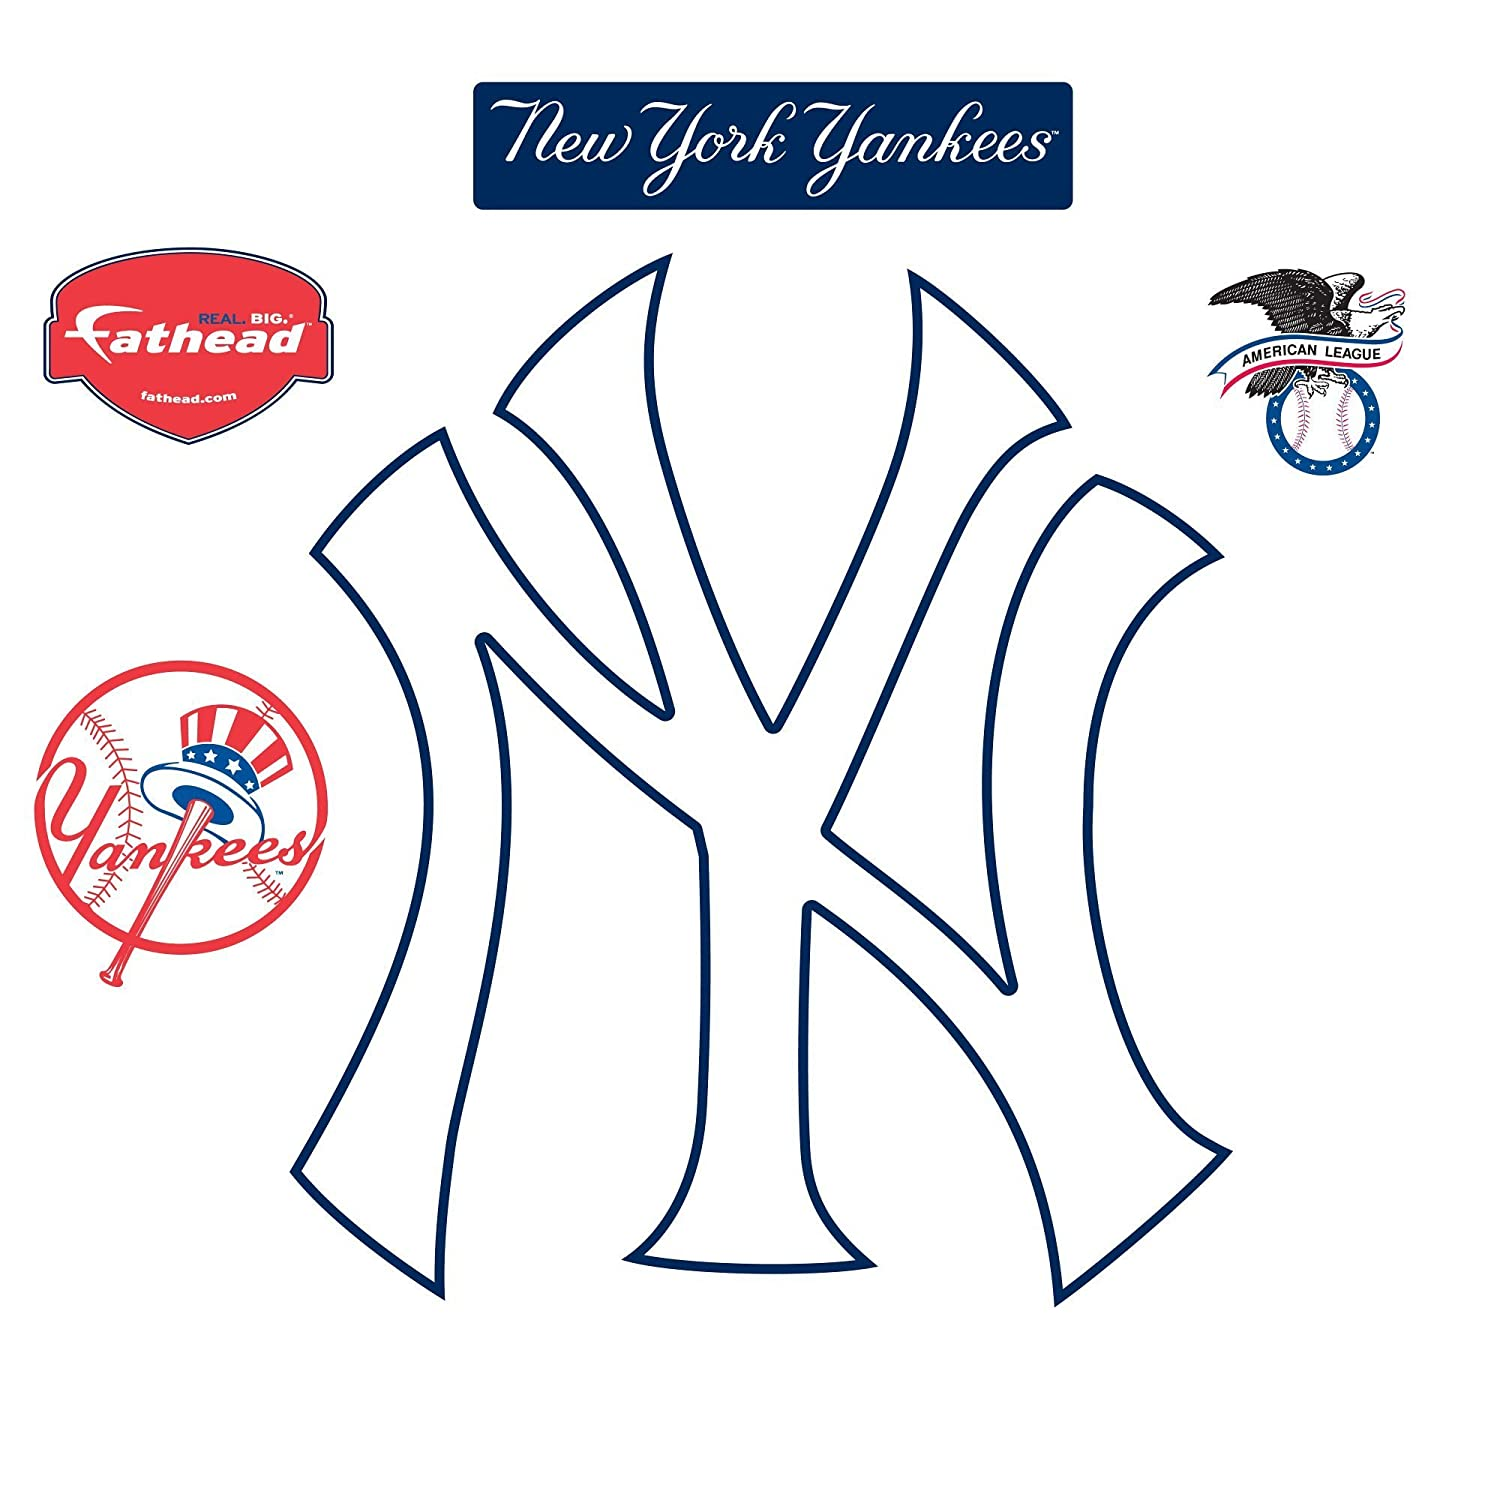 new york yankees wall art shenra com